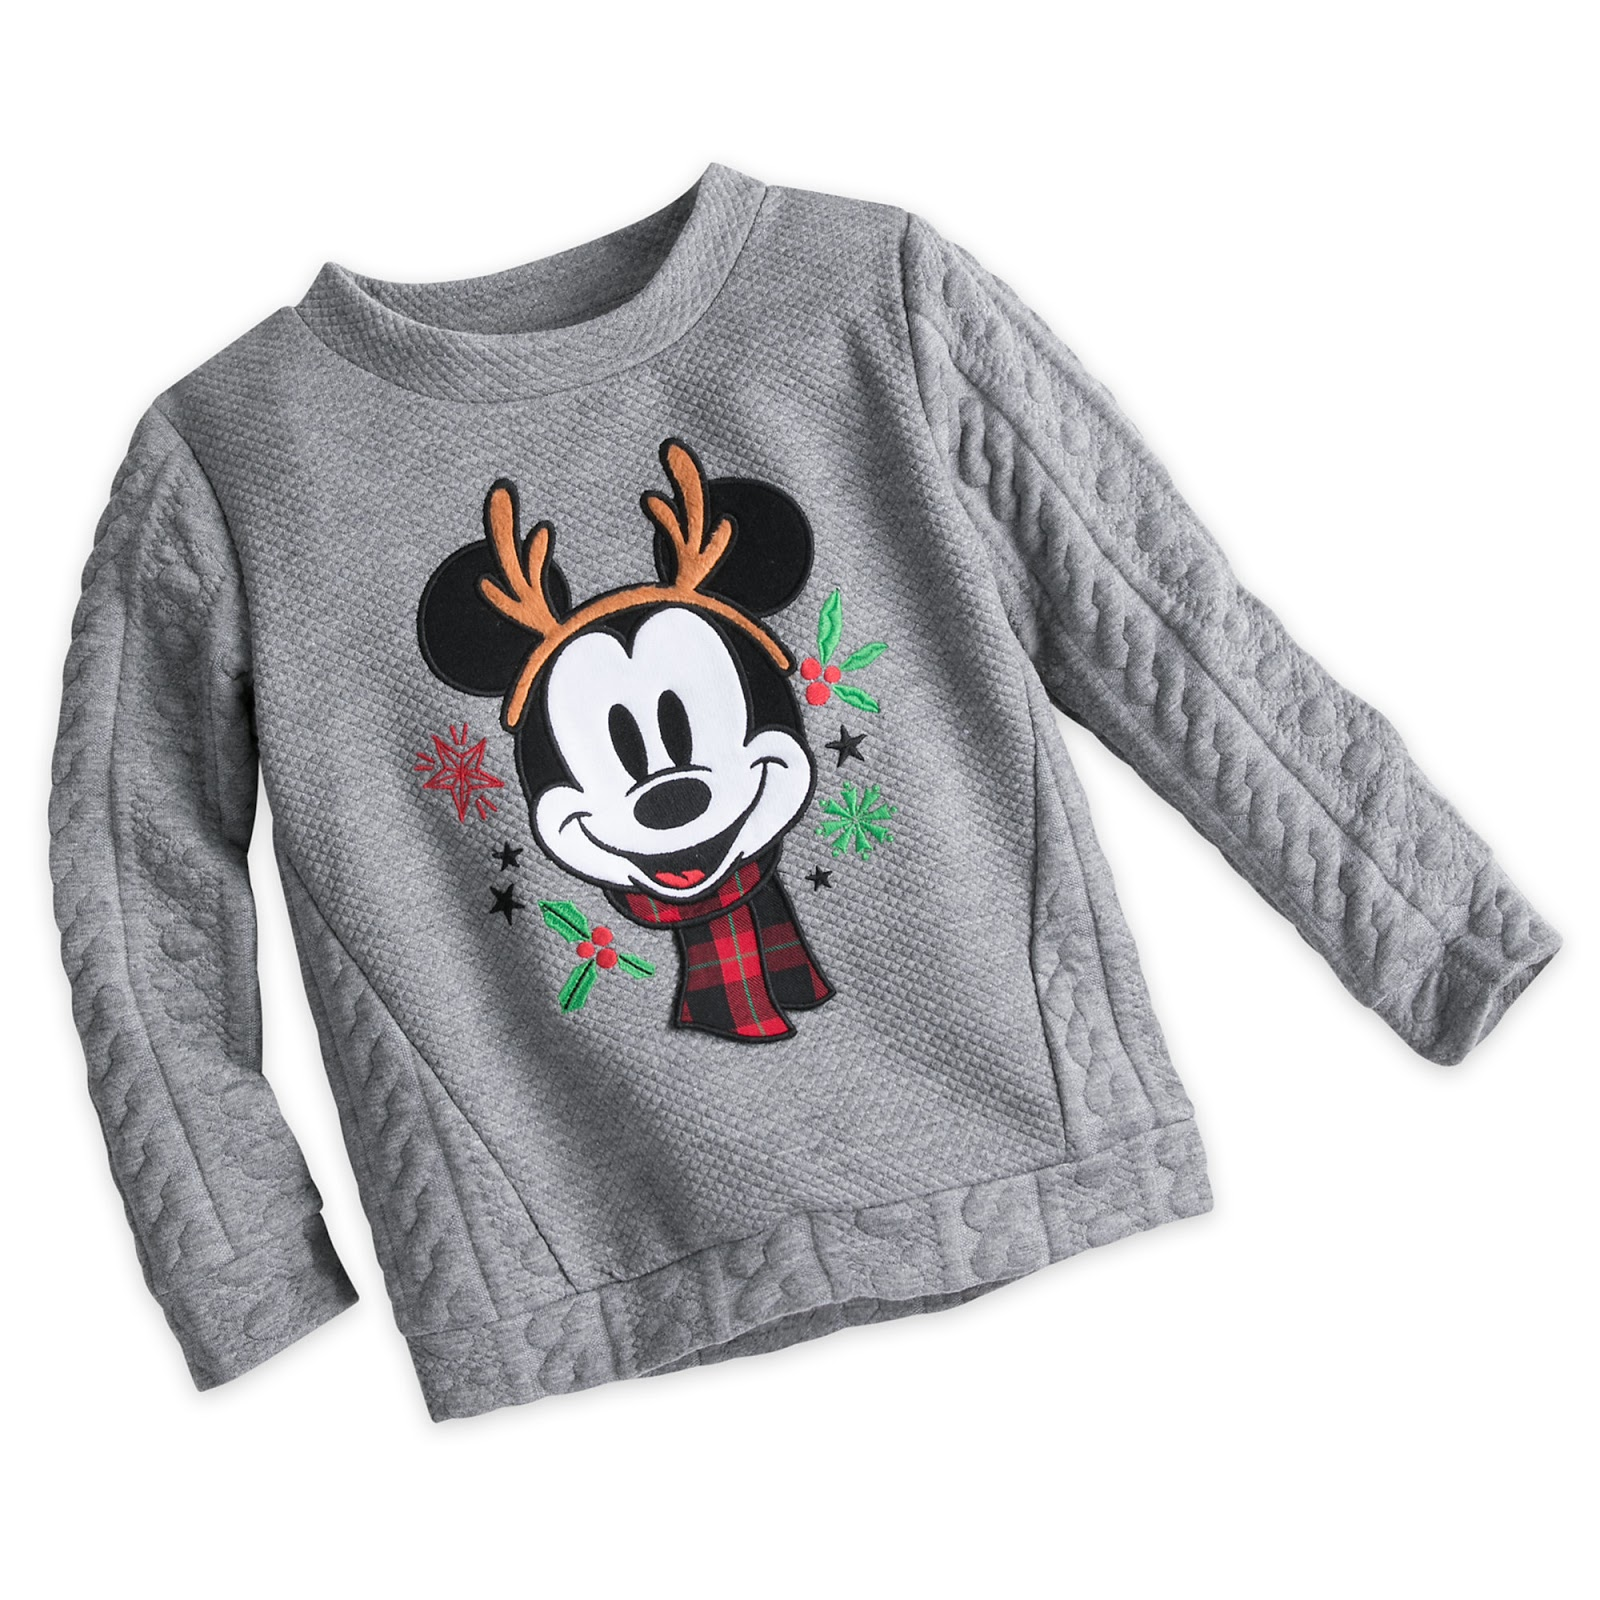 Prince Jacques Disney Mickey Mouse sweater.jpeg